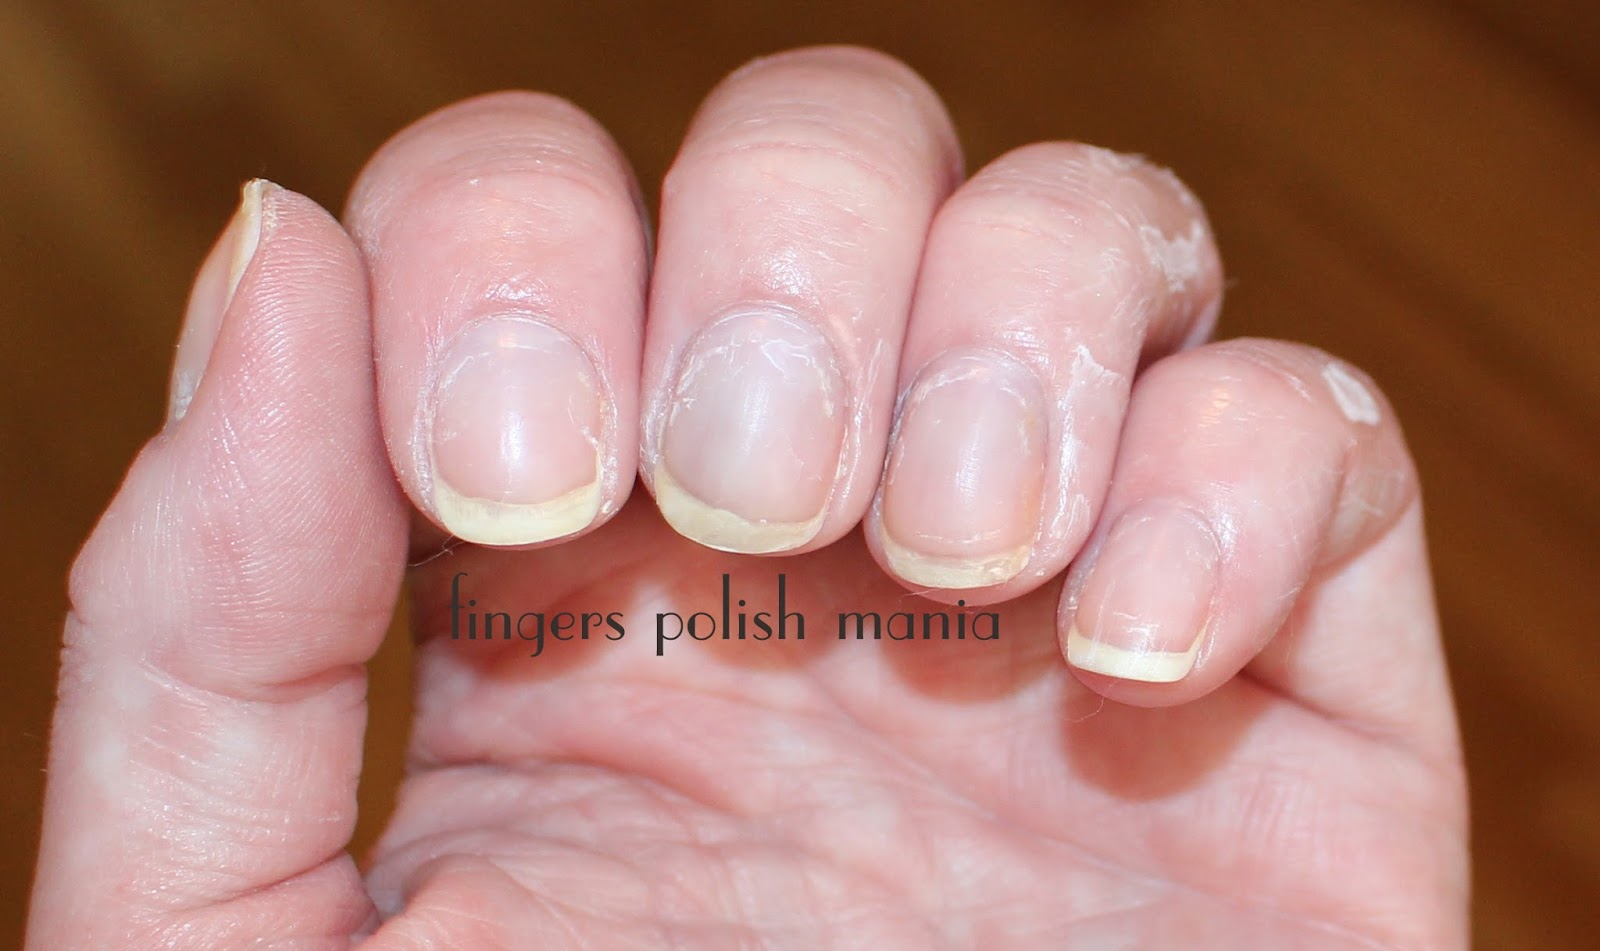 fingers polish mania: EZ Dip Gel Soak Off and Redo